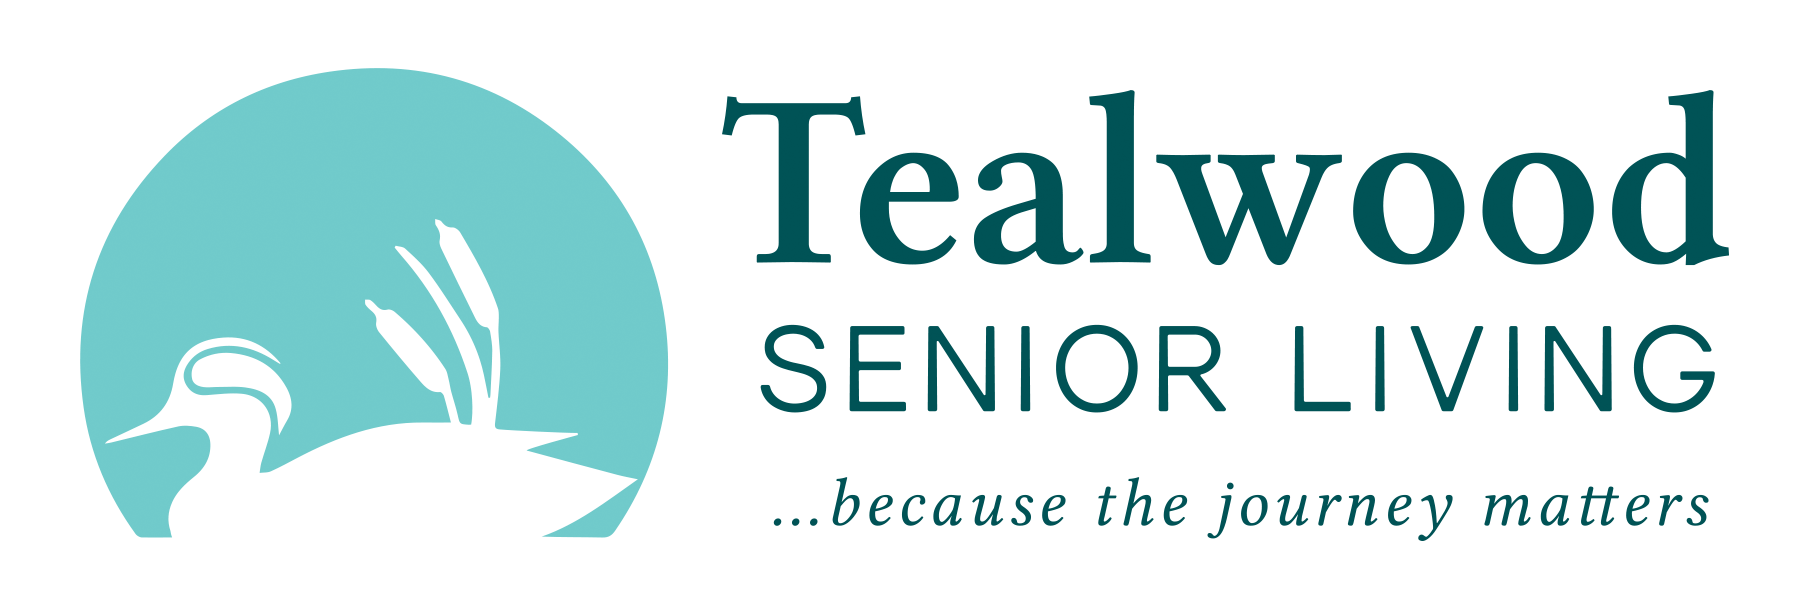 Tealwood Logo with Tagline.png